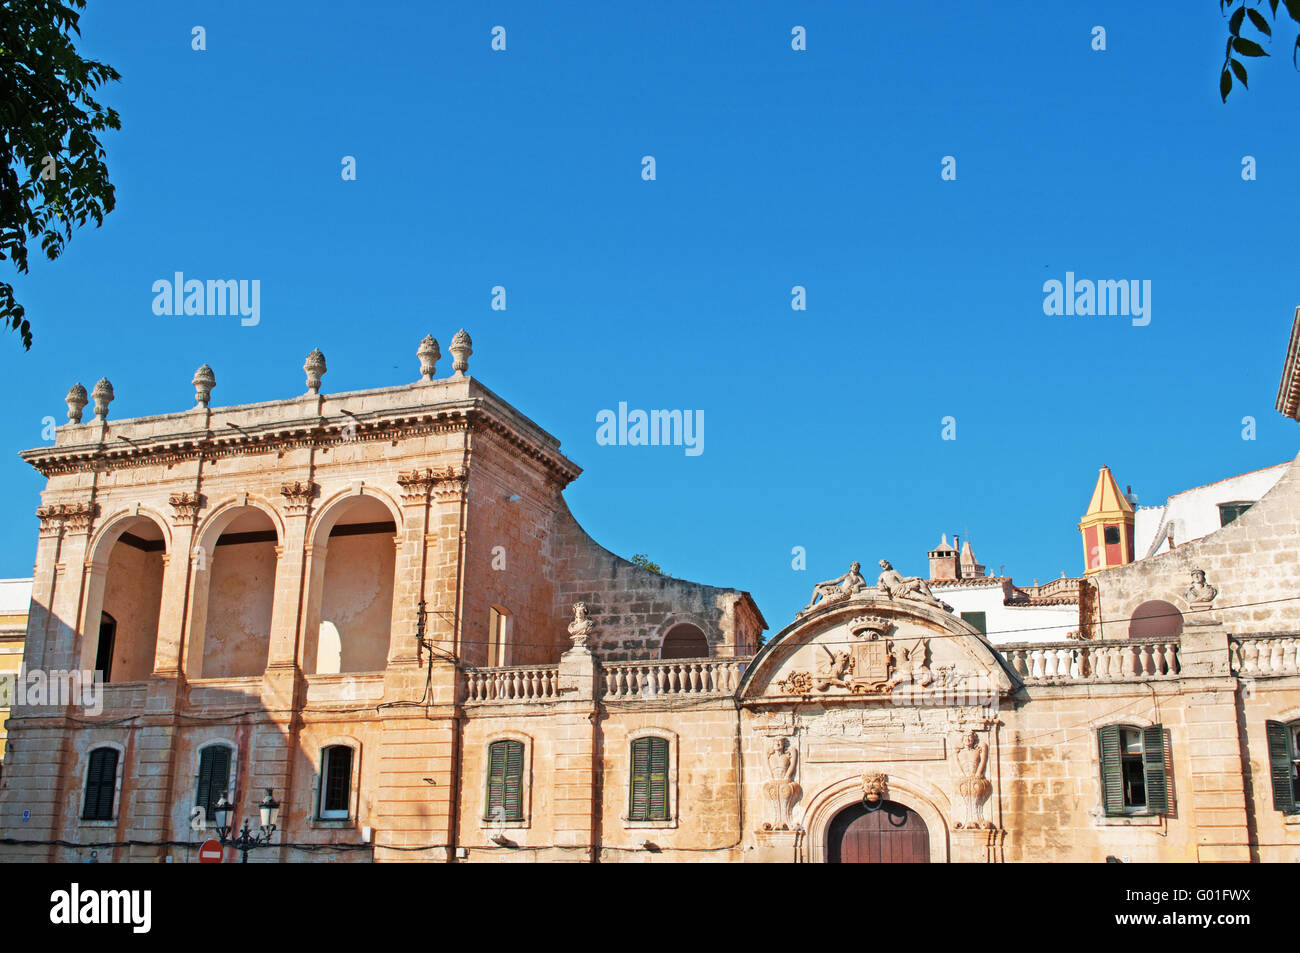 Menorca, Balearic Islands: Ciutadella, details of Torre Saura Palace, one of the main places of touristic interest - Stock Image